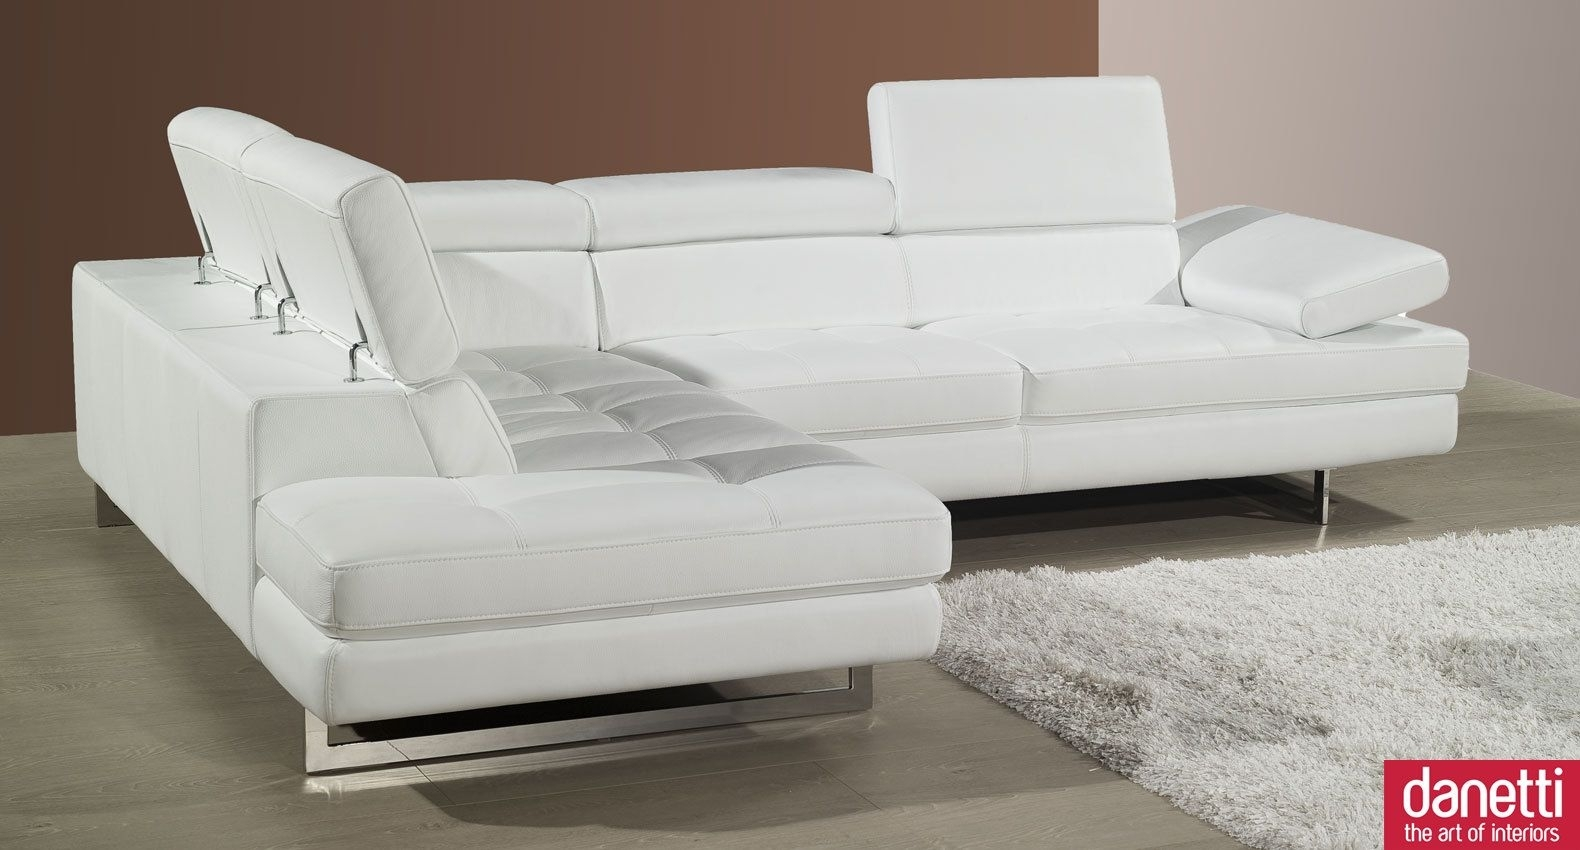 Modern White Leather Couchimage Gallery | Image Gallery | Idi Design Throughout White Leather Corner Sofas (Image 9 of 10)